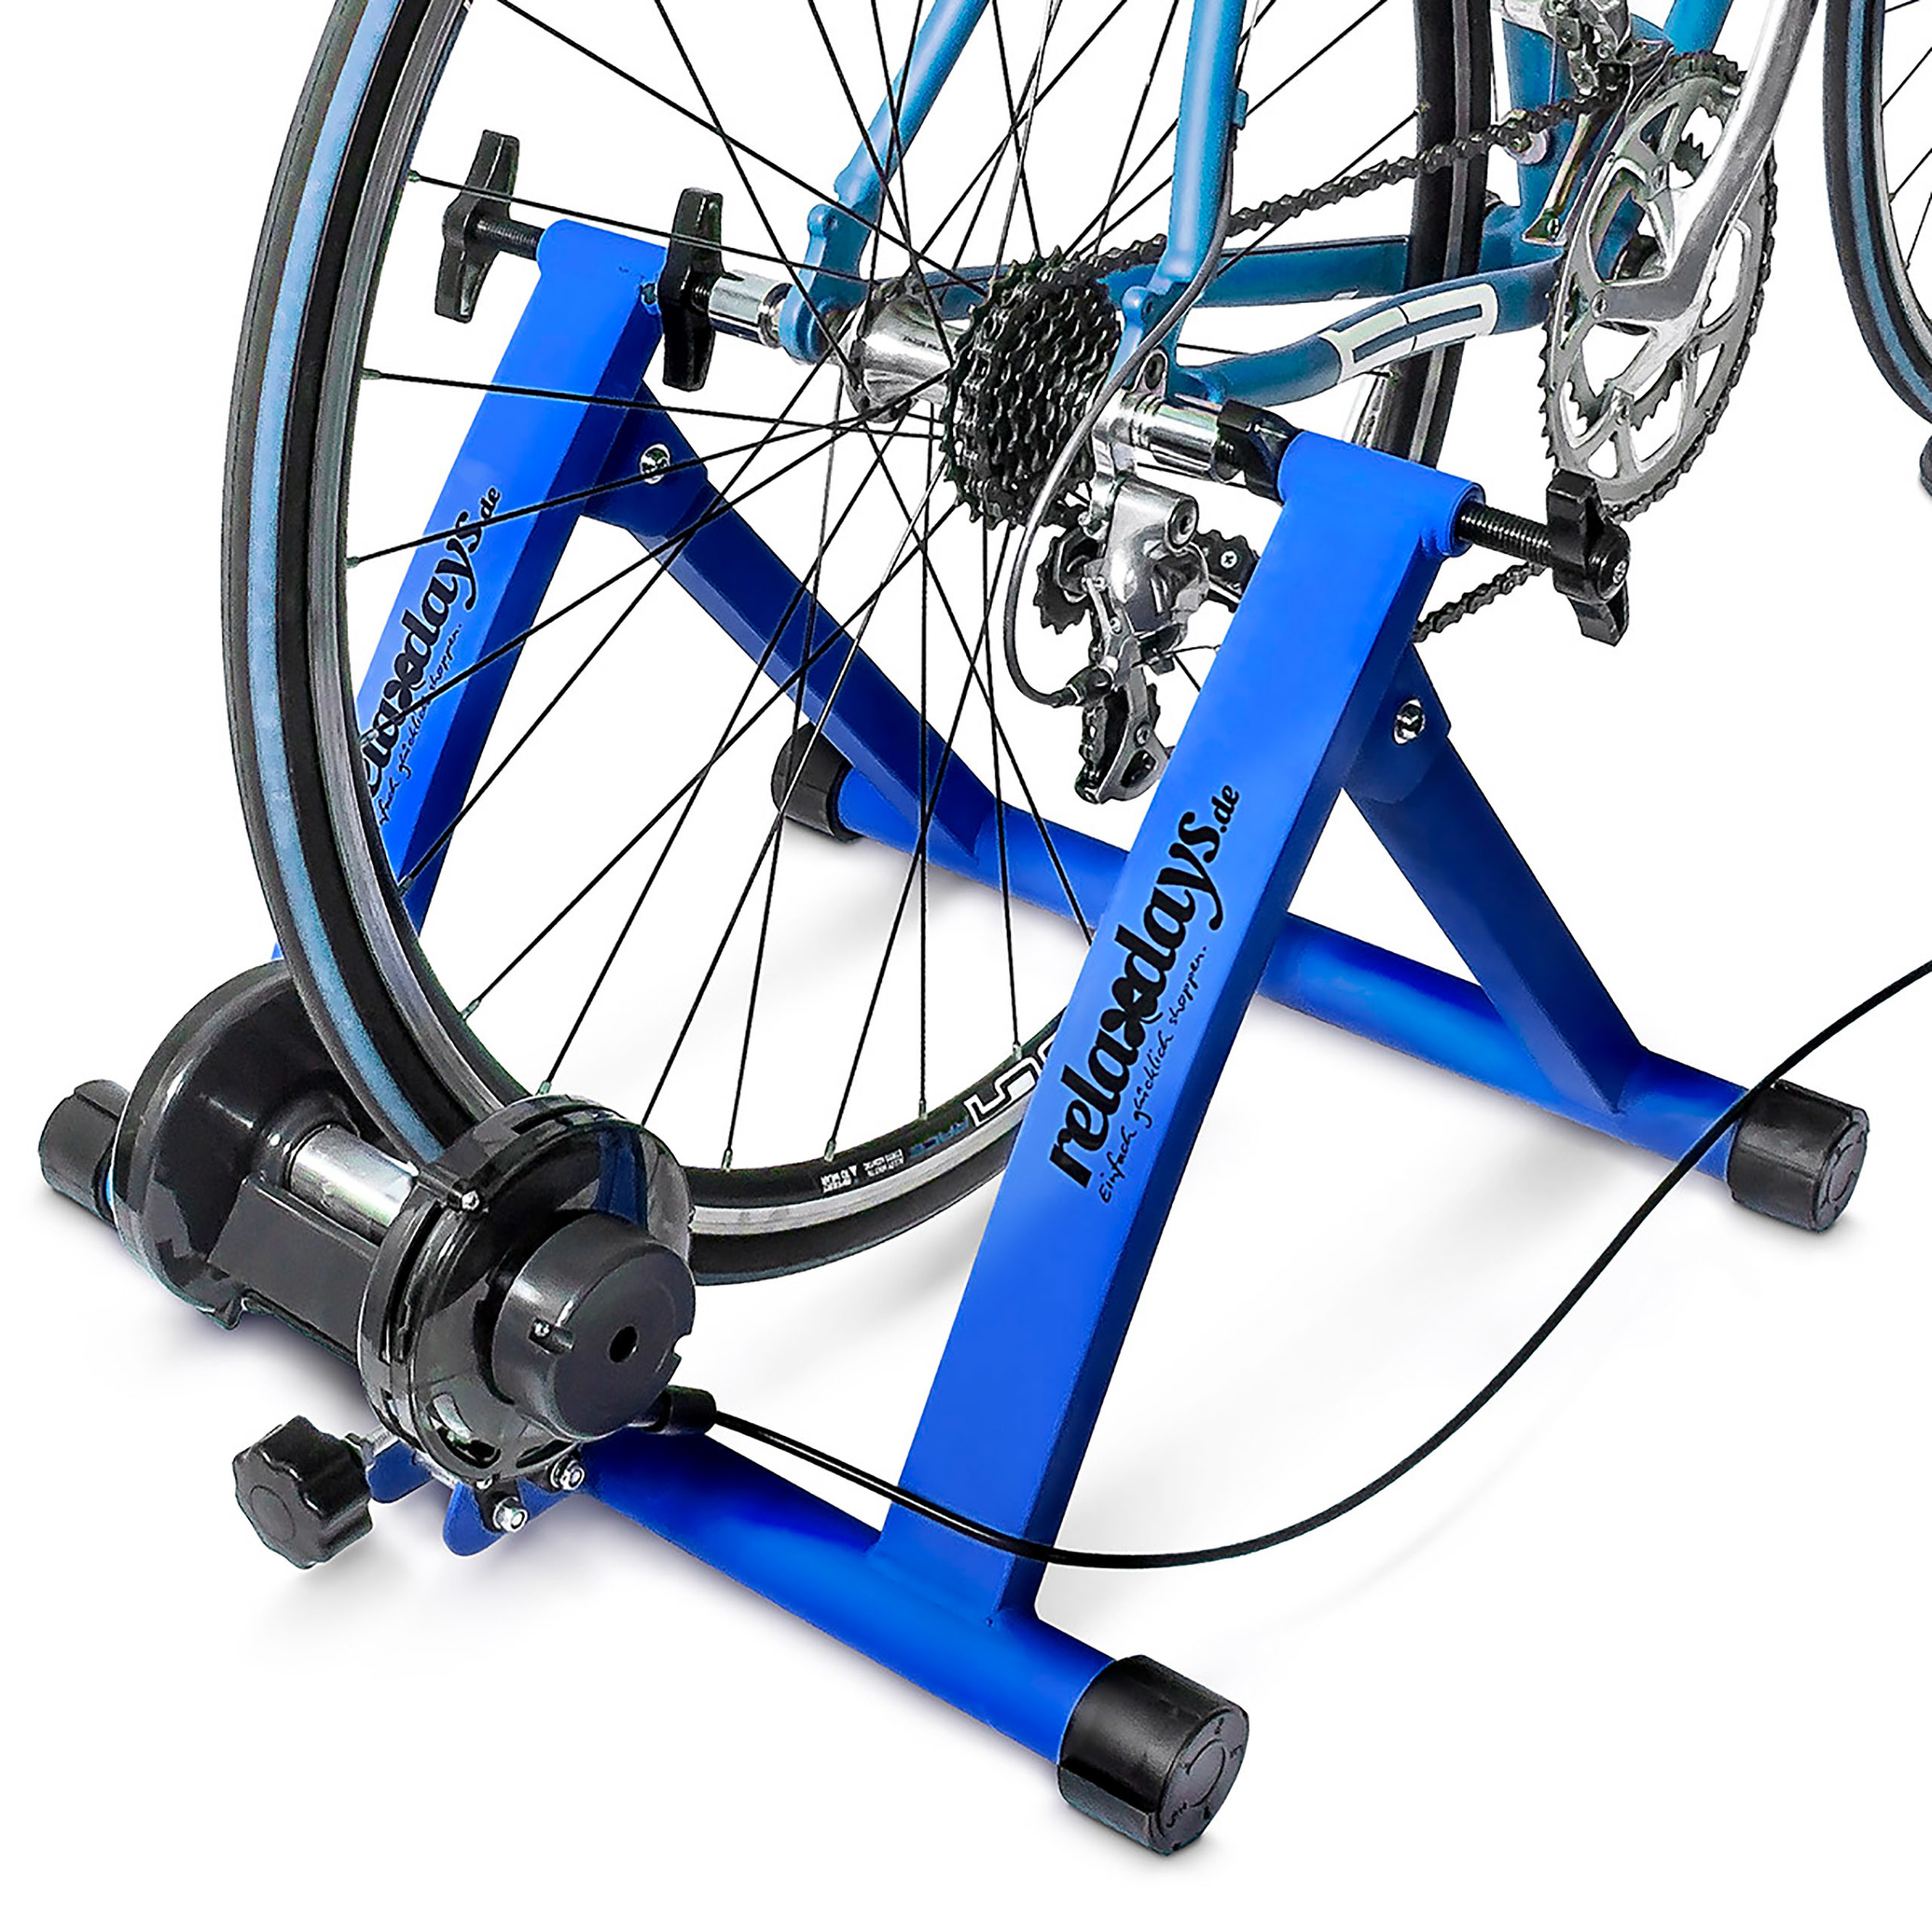 Indoor-Bicycle-Resistance-Trainer-Cycling-6-Gears-26-28-034-2-Colours-Blue-Green